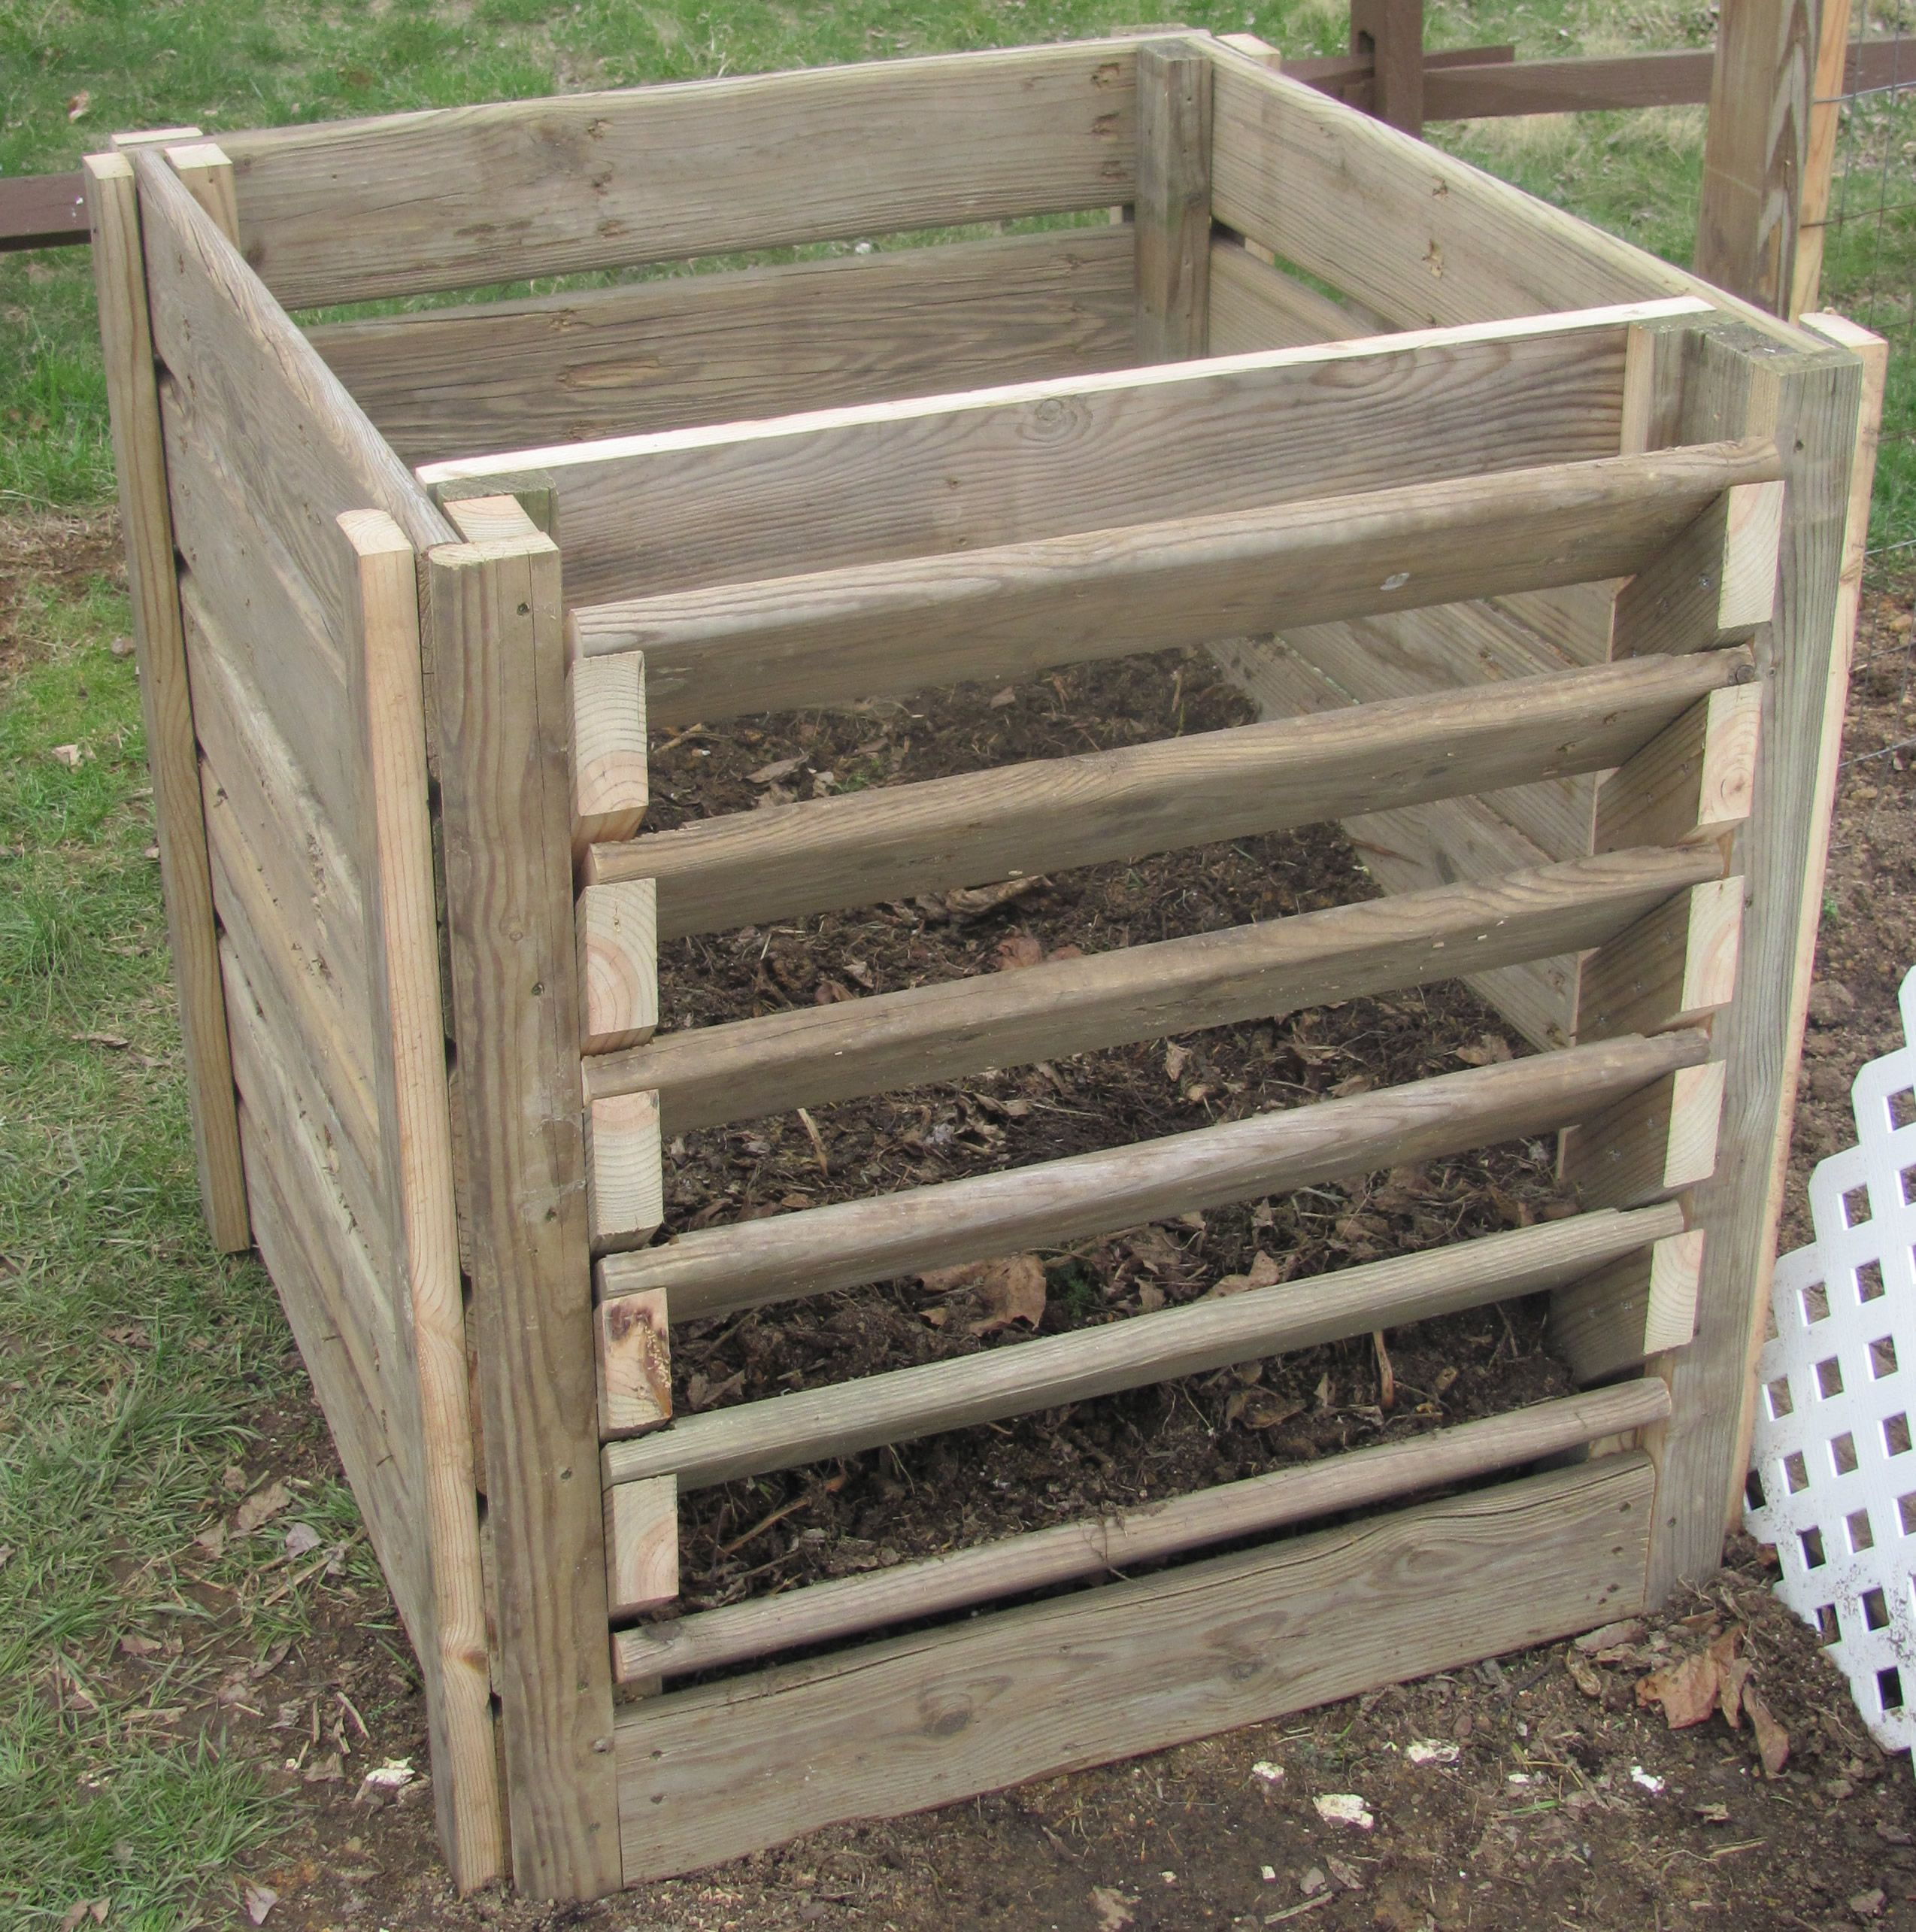 Compost Bin | Composting, Construction and Programming